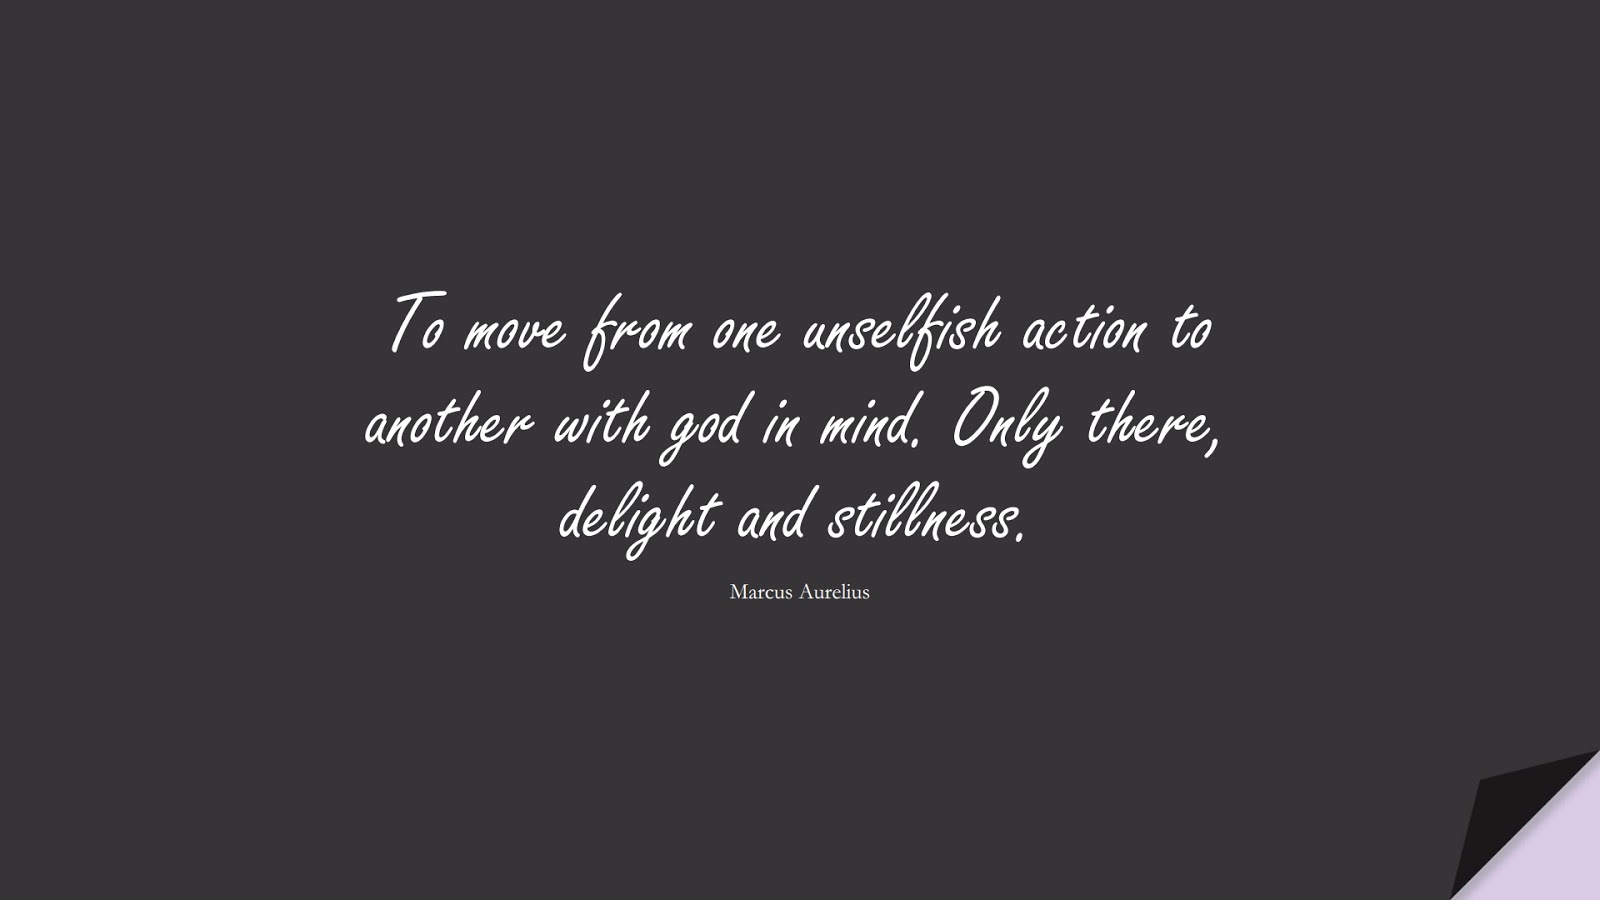 To move from one unselfish action to another with god in mind. Only there, delight and stillness. (Marcus Aurelius);  #MarcusAureliusQuotes